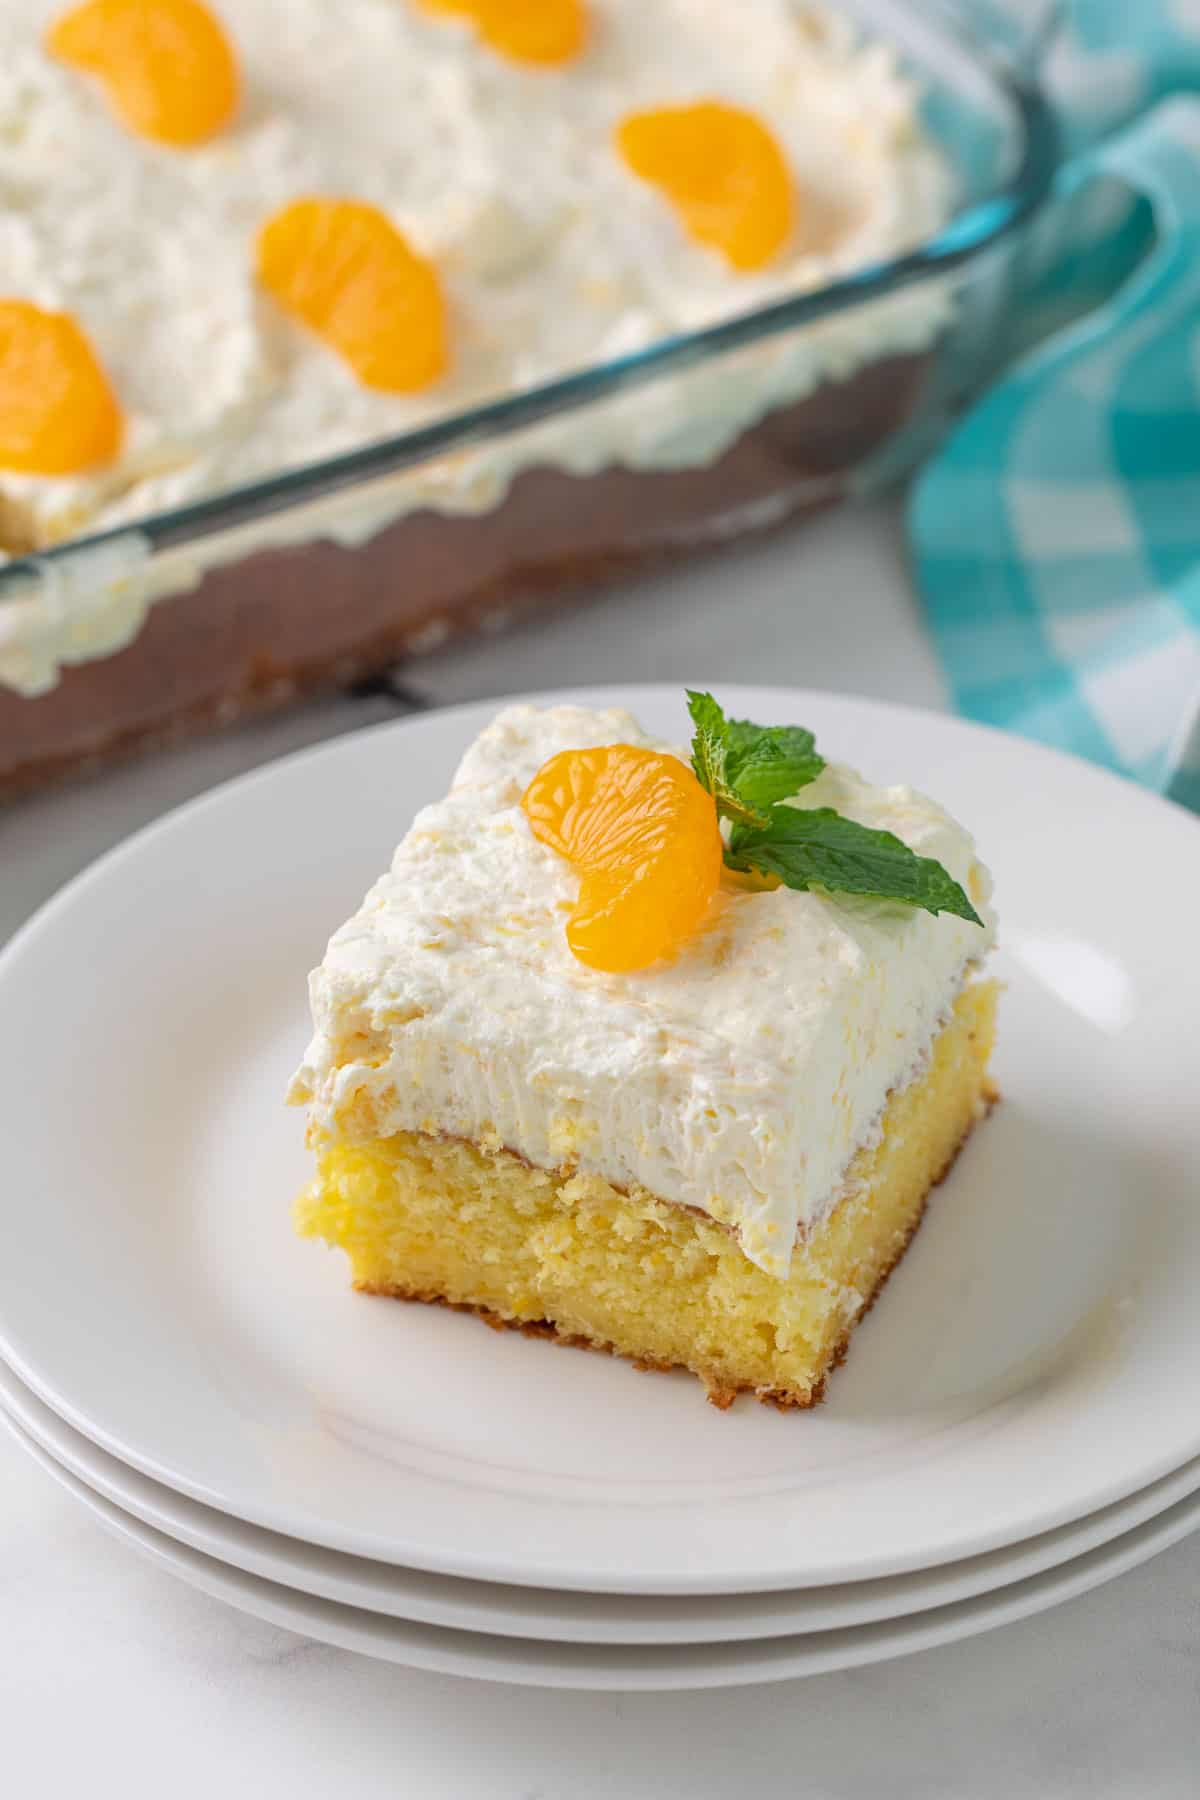 A slice of pig pickin' cake topped with a mandarin orange slice on a white plate.